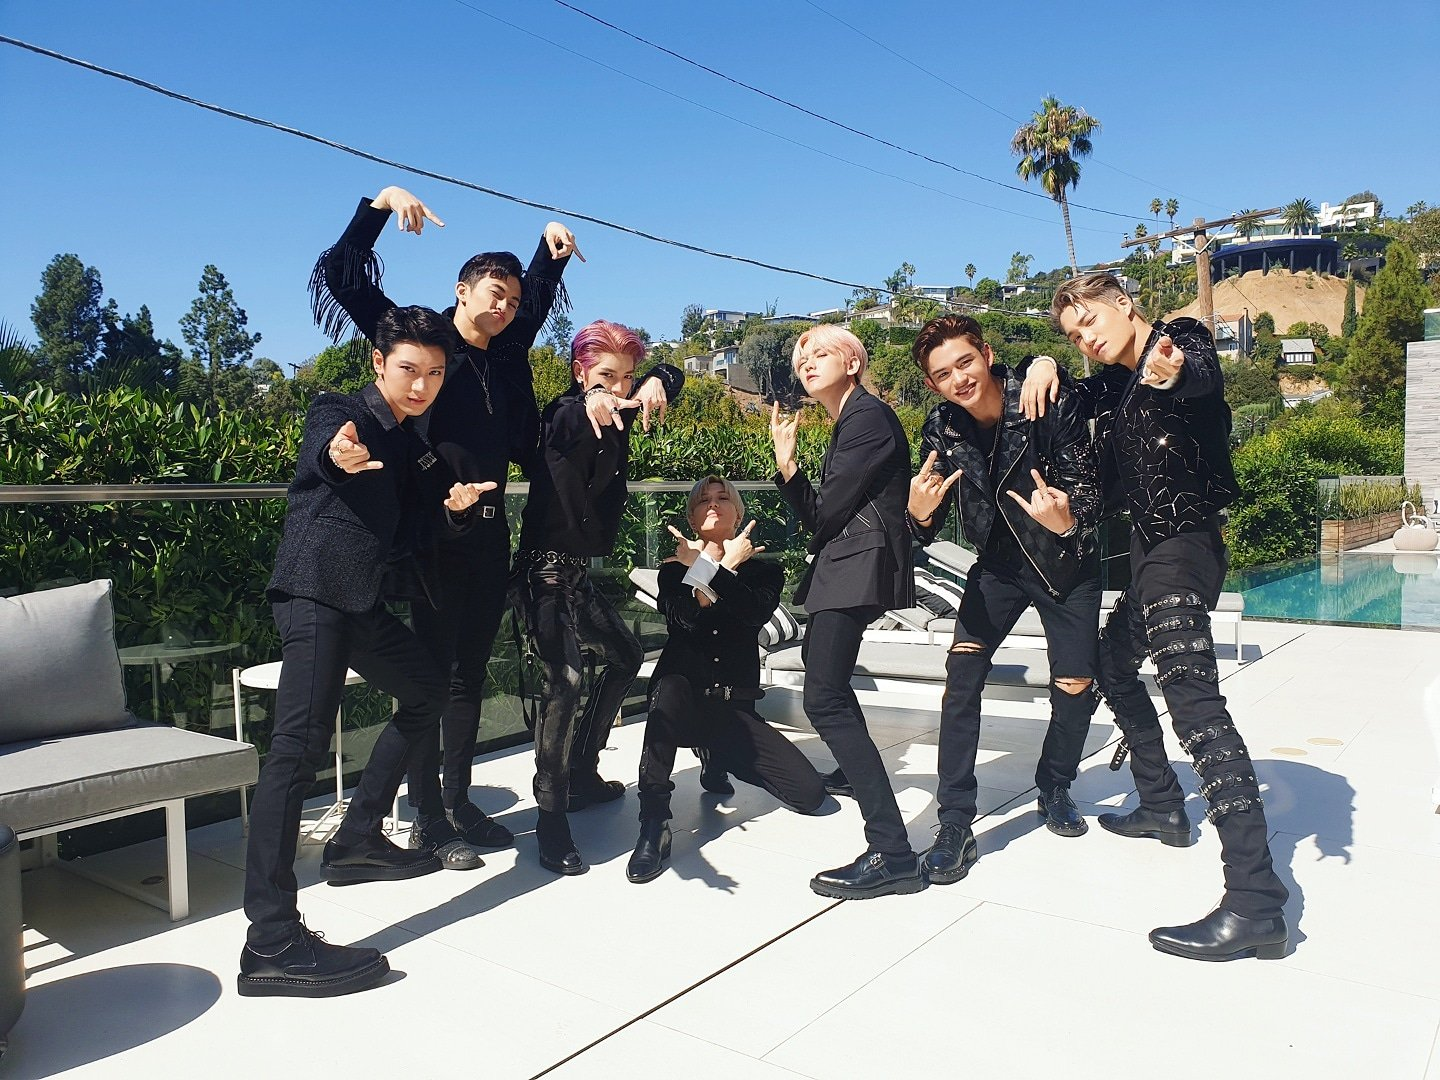 SuperM posing outdoors in their stage outfit, from left to right: Ten, Mark, Taeyong, Taemin, Baekhyun, Lucas, Kai.